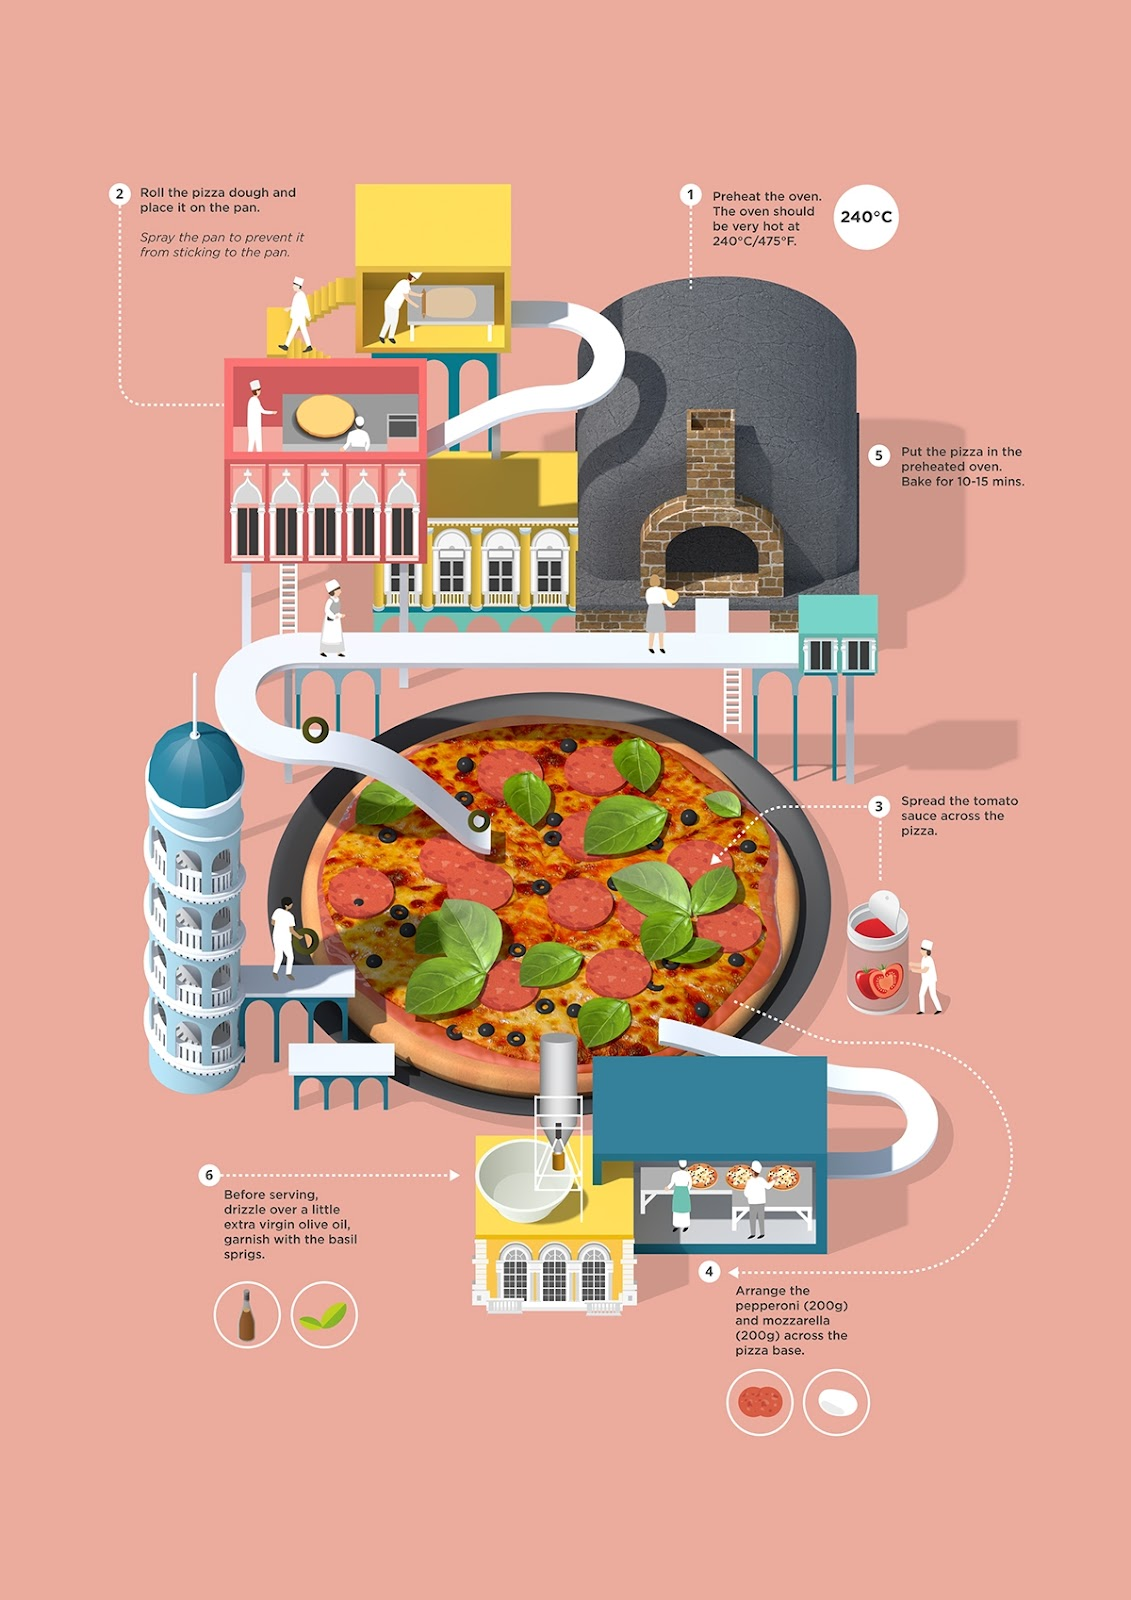 05-Pepperoni-Pizza-Jing-Zhang-Recipe-cards-and-Imaginary-Factory-Infographics-www-designstack-co